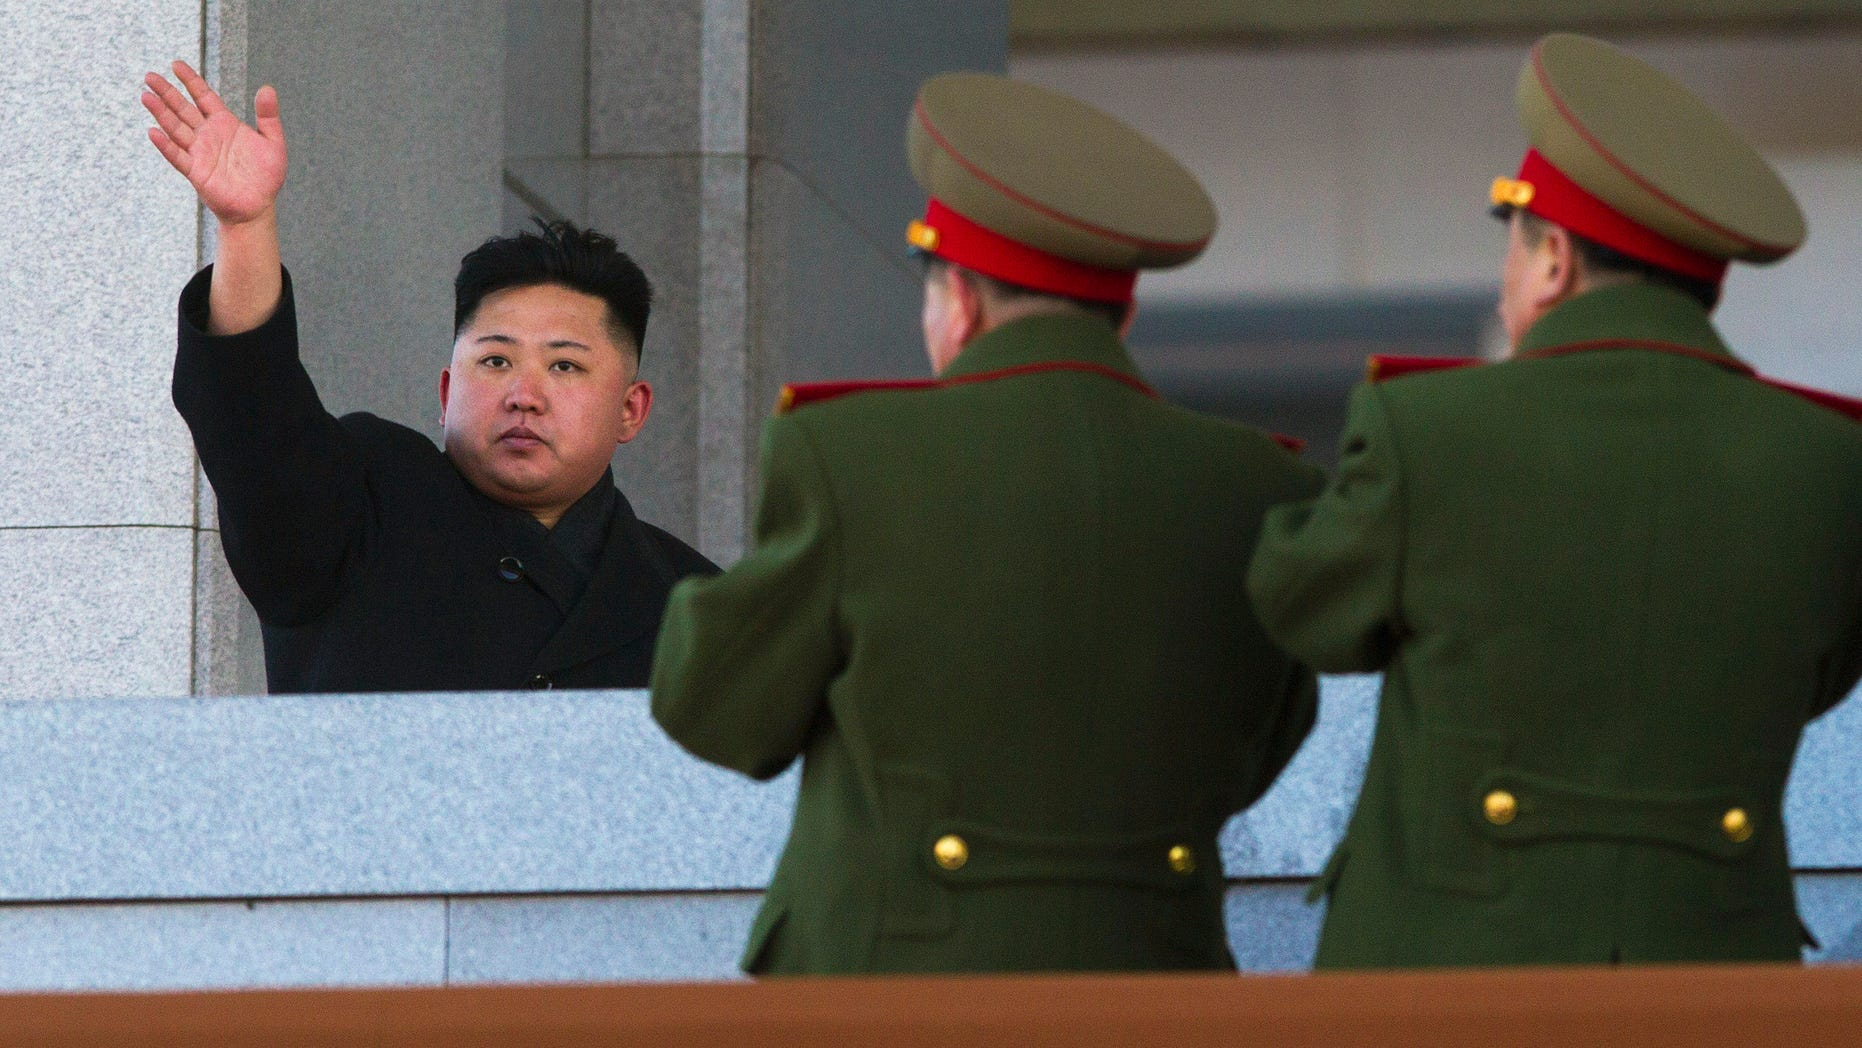 North Korean leader Kim Jong Un waves at Kumsusan Memorial Palace in Pyongyang after reviewing a parade of thousands of soldiers and commemorating the 70th birthday of his late father Kim Jong Il. (AP Photo/David Guttenfelder, File)